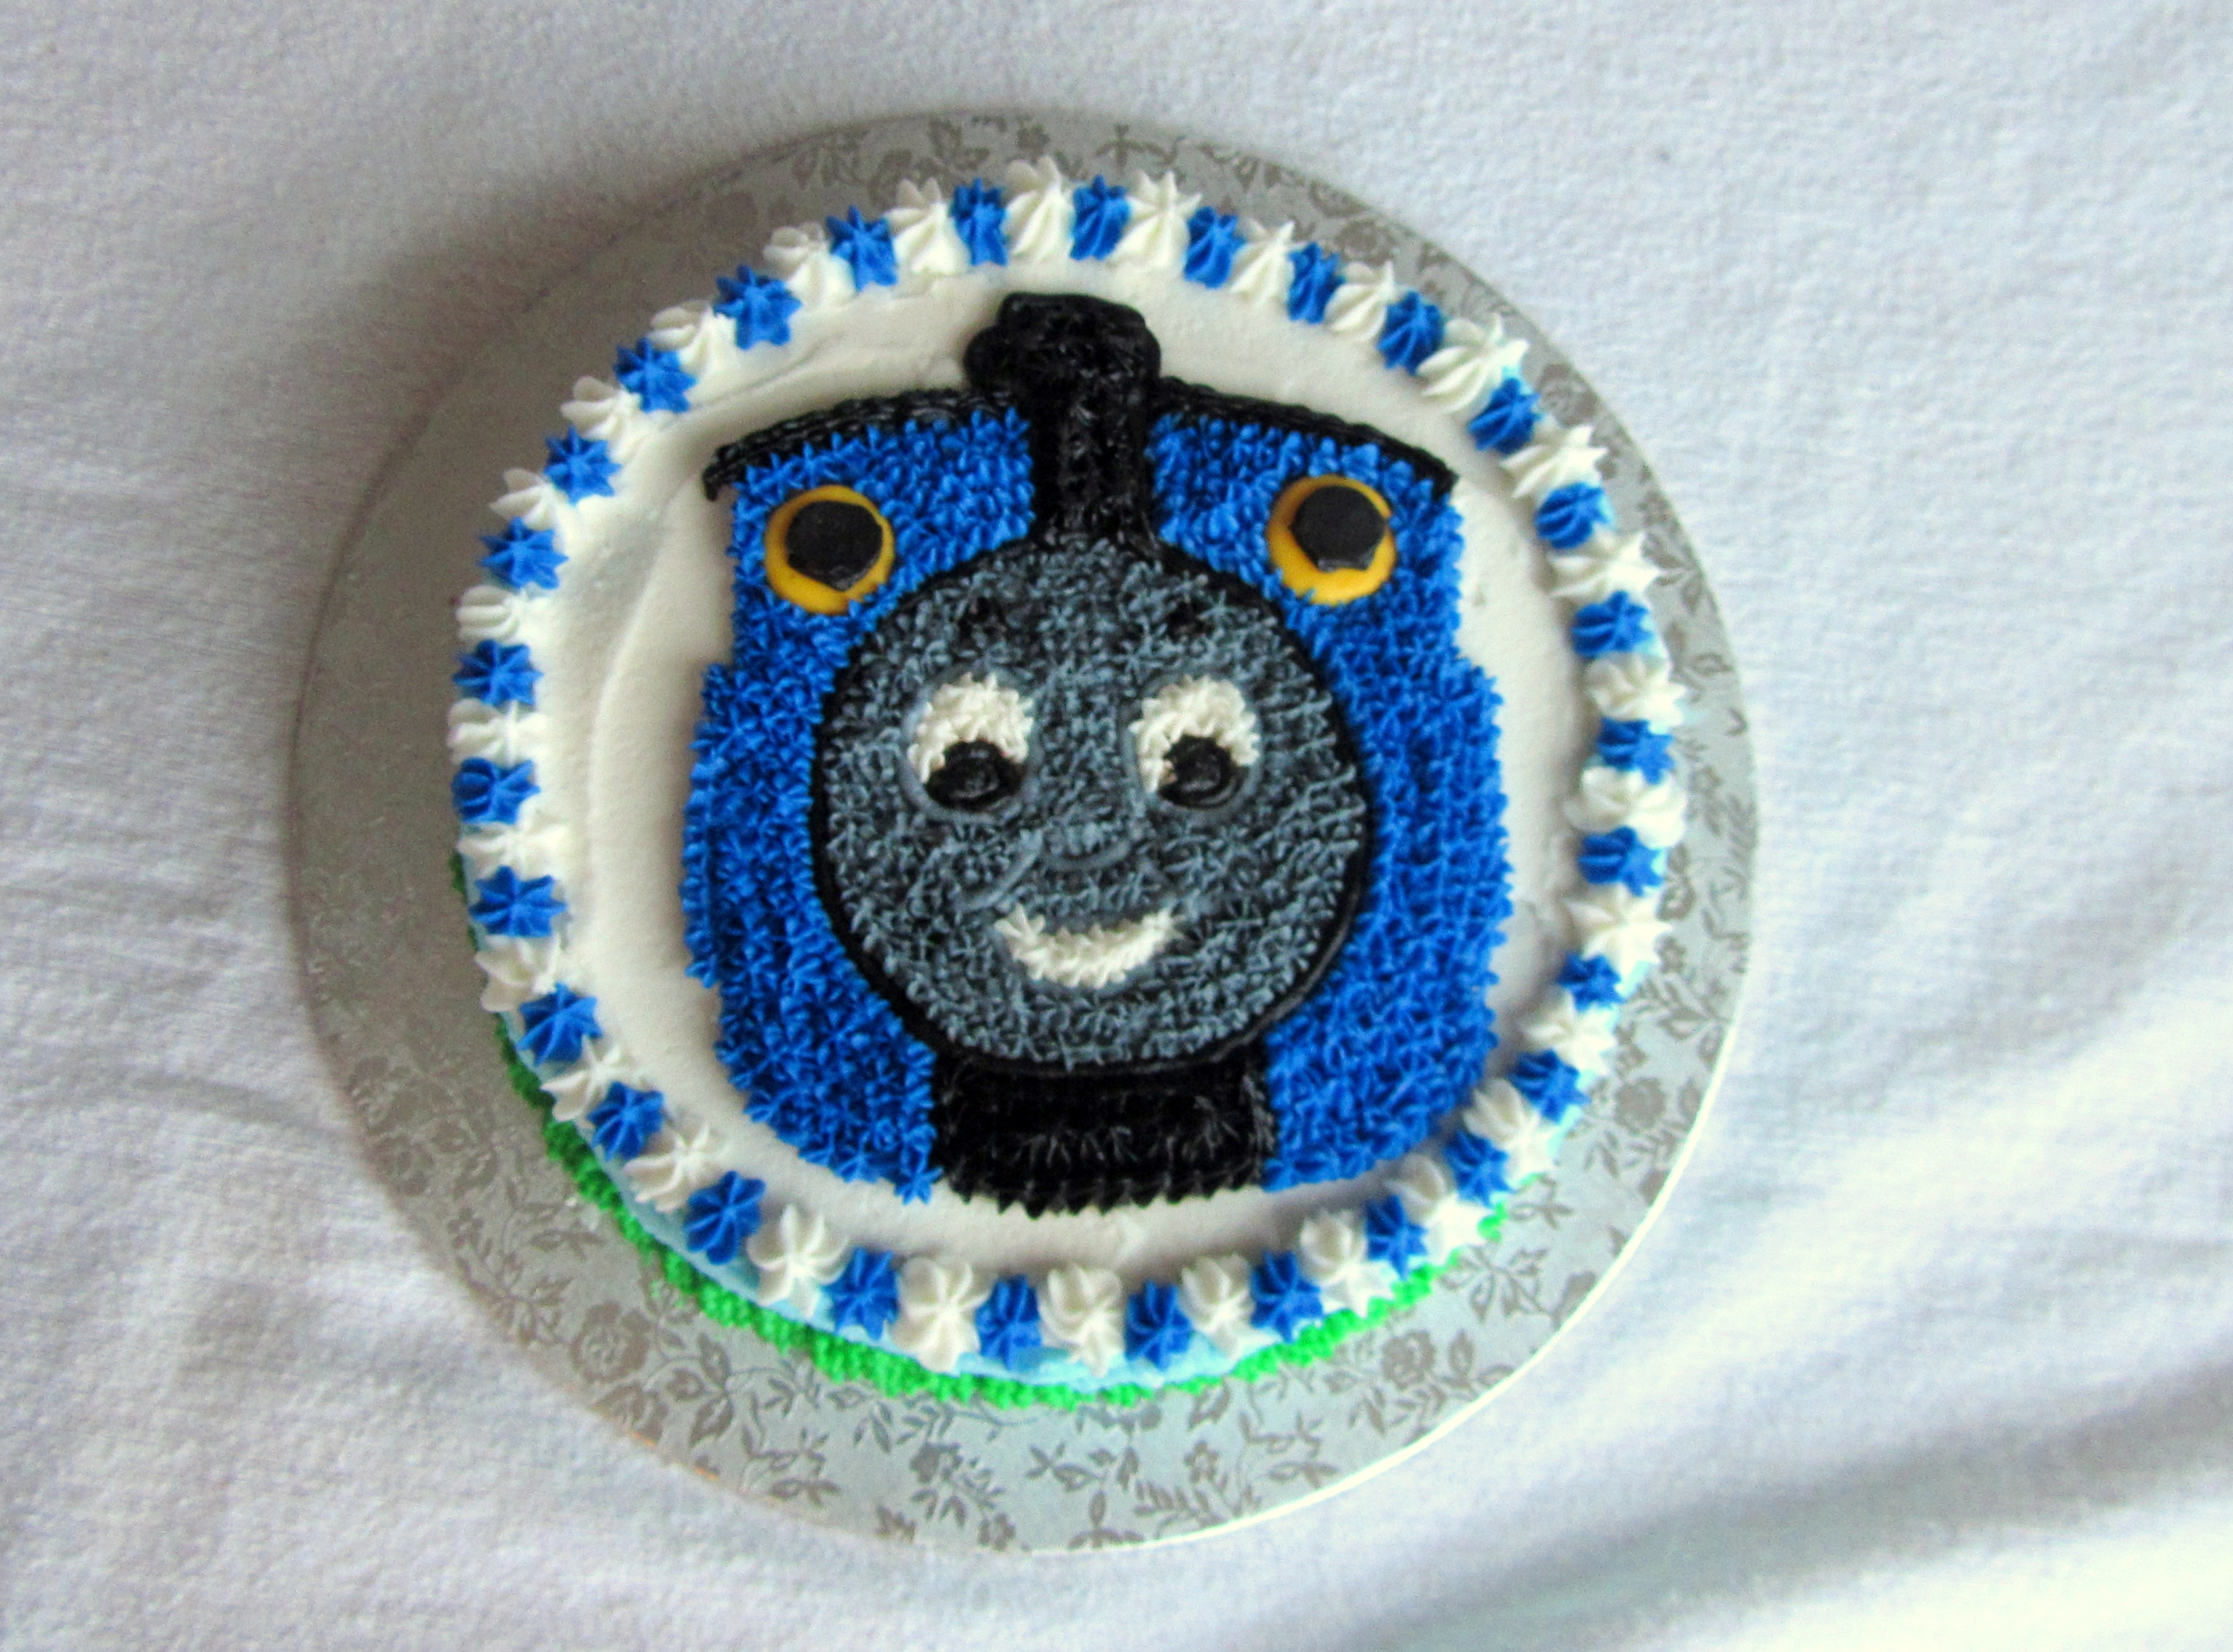 Babys First Birthday Thomas The Tank Engine Birthday Cake With